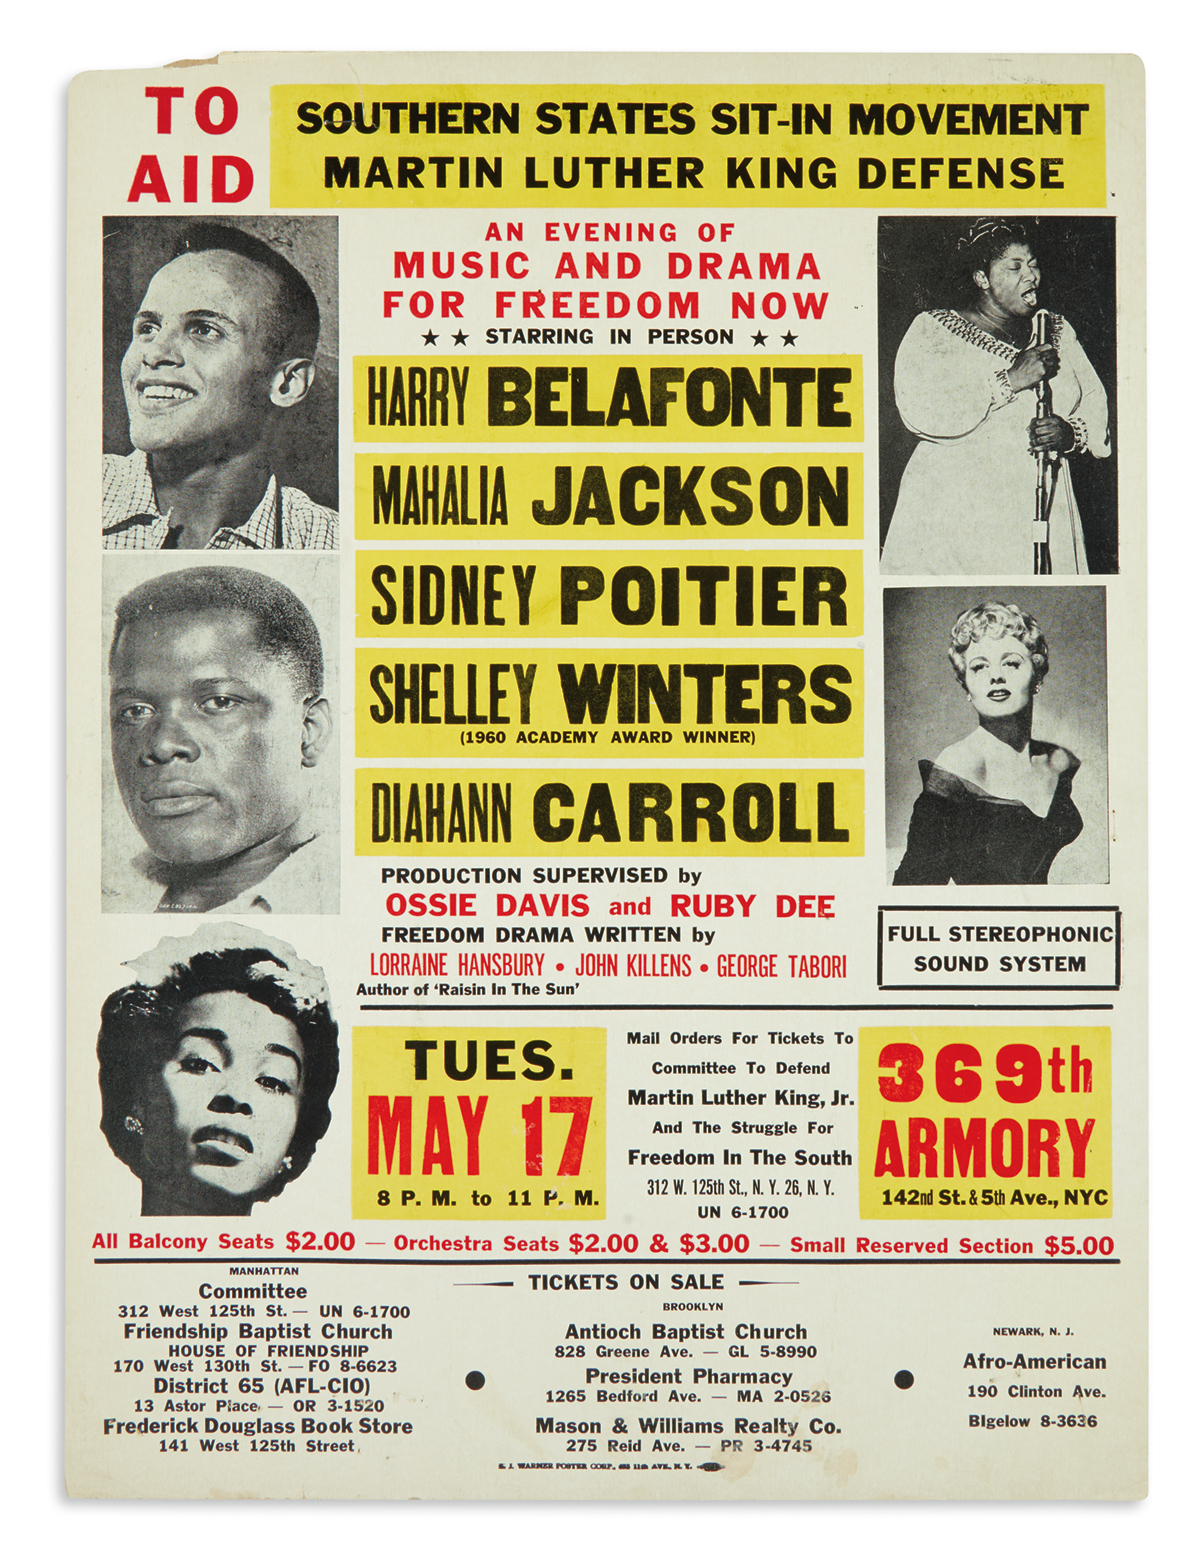 (CIVIL RIGHTS.) Poster for a concert to aid the Martin Luther King Defense Fund.